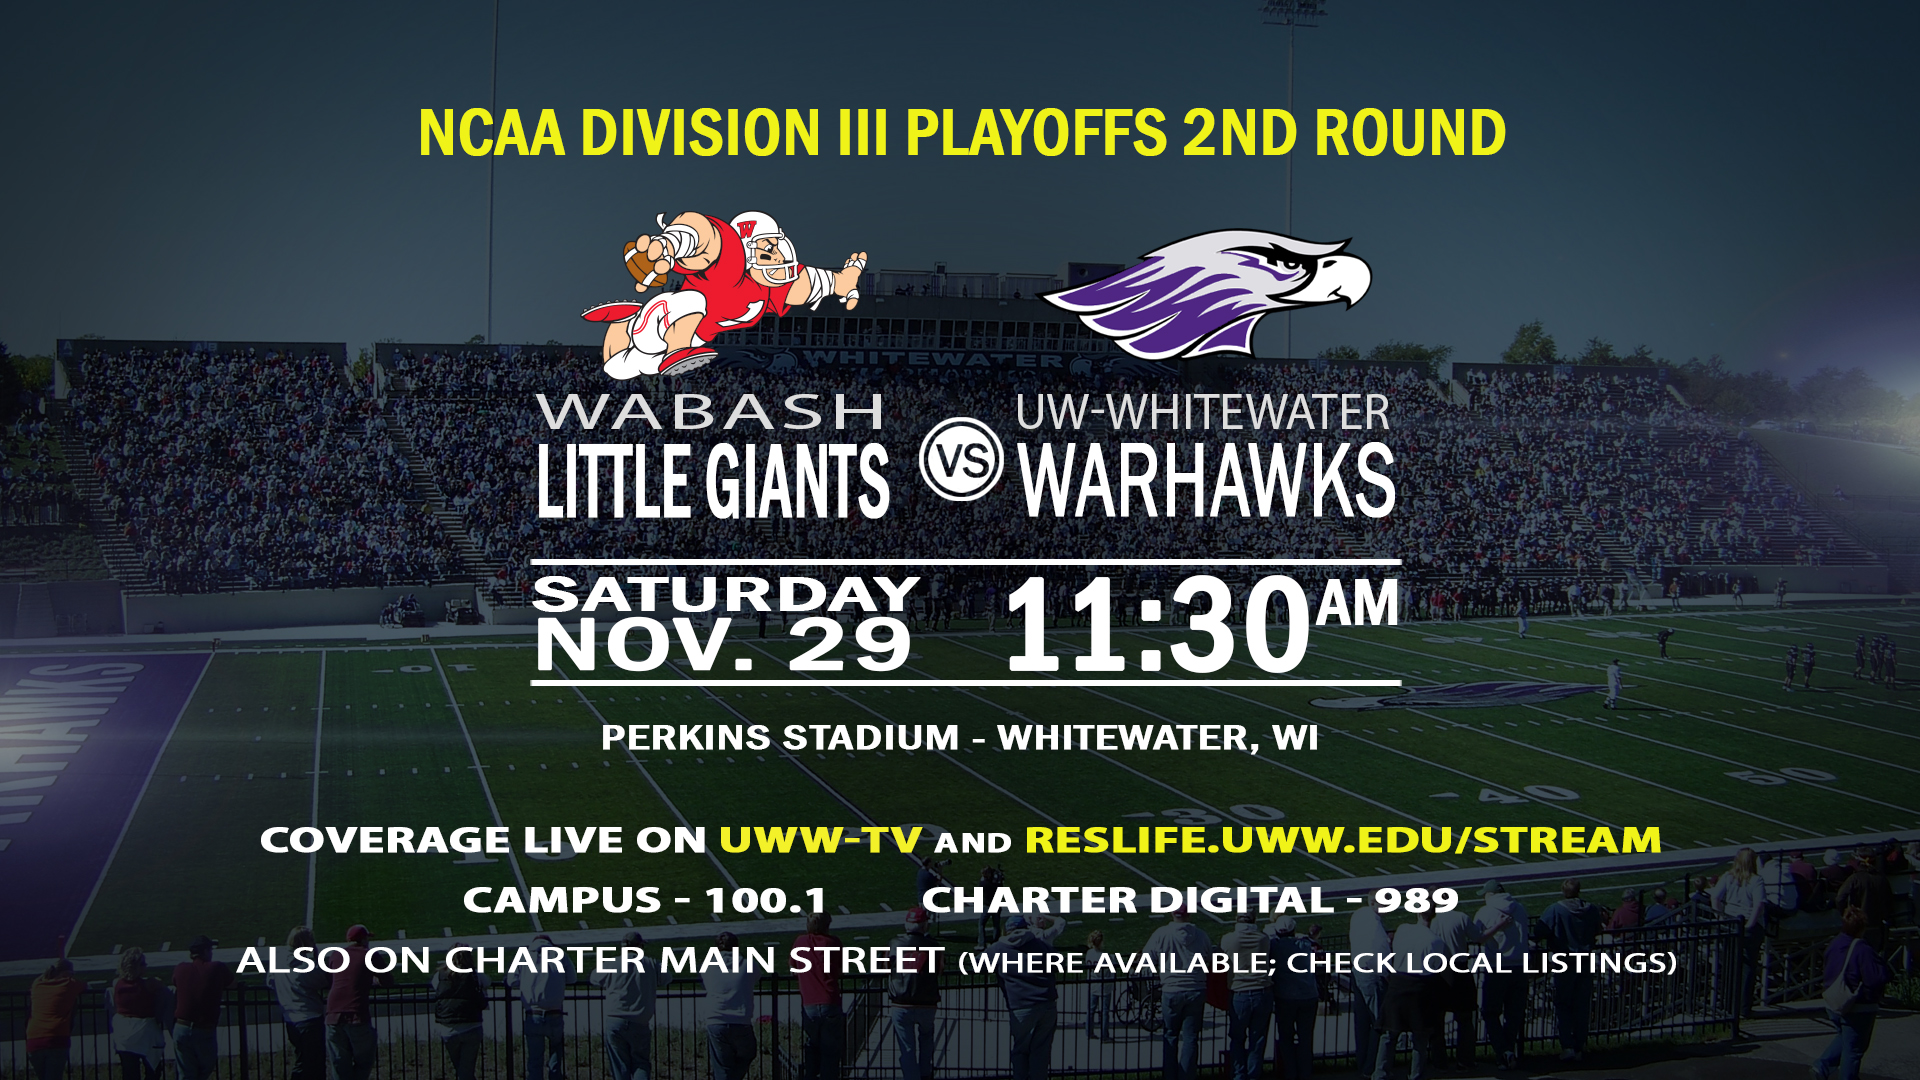 #1 UW-Whitewater to Host #14 Wabash in Second Round of D3 Football Playoffs